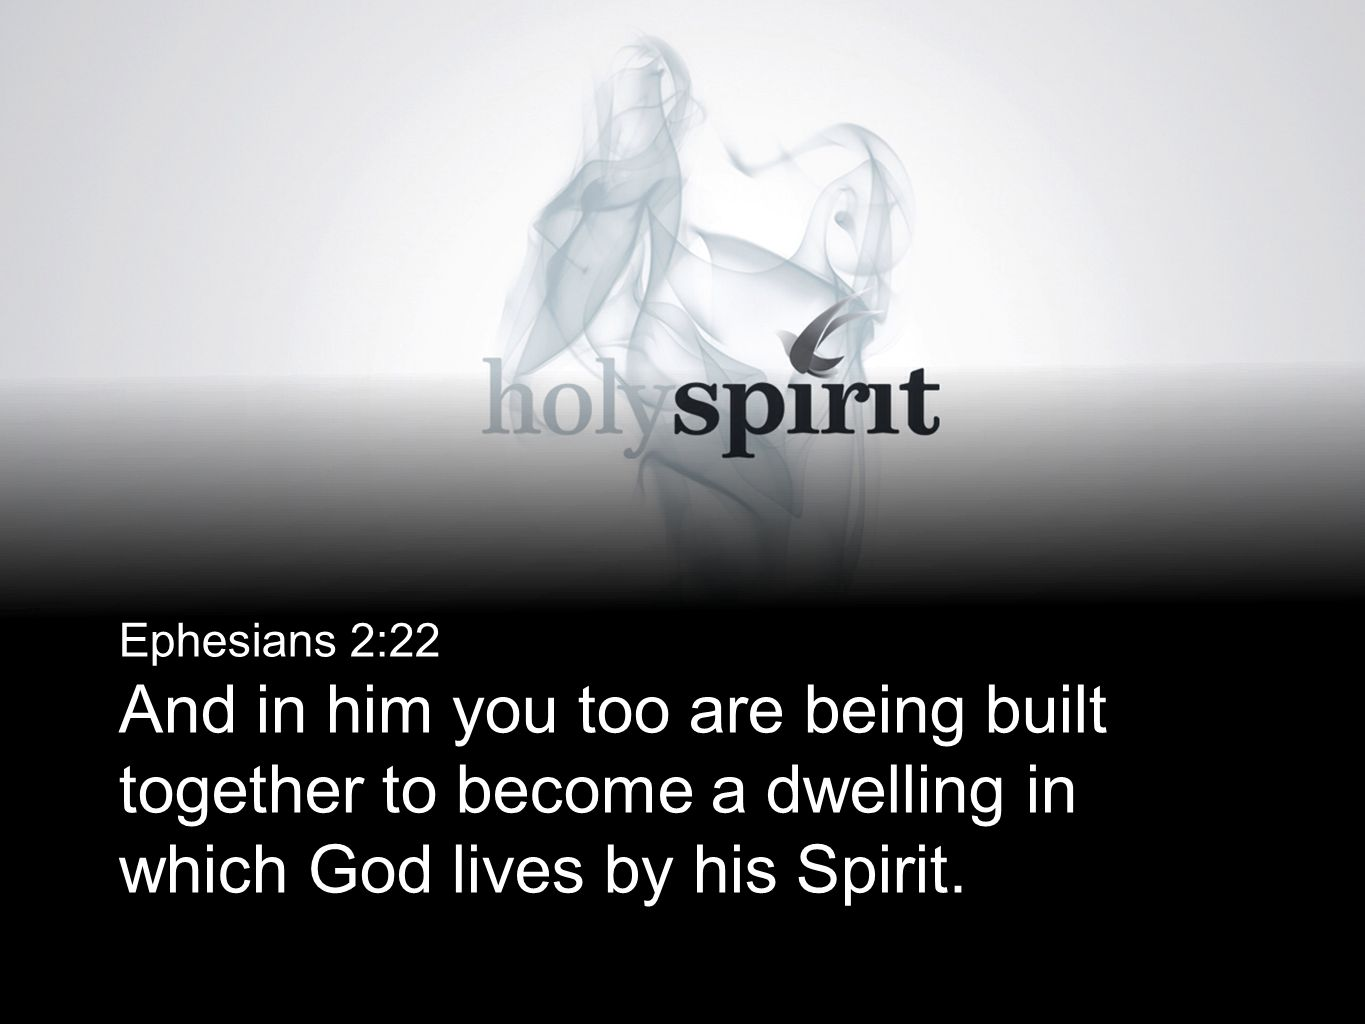 Ephesians 2:22 And in him you too are being built together to become a dwelling in which God lives by his Spirit.